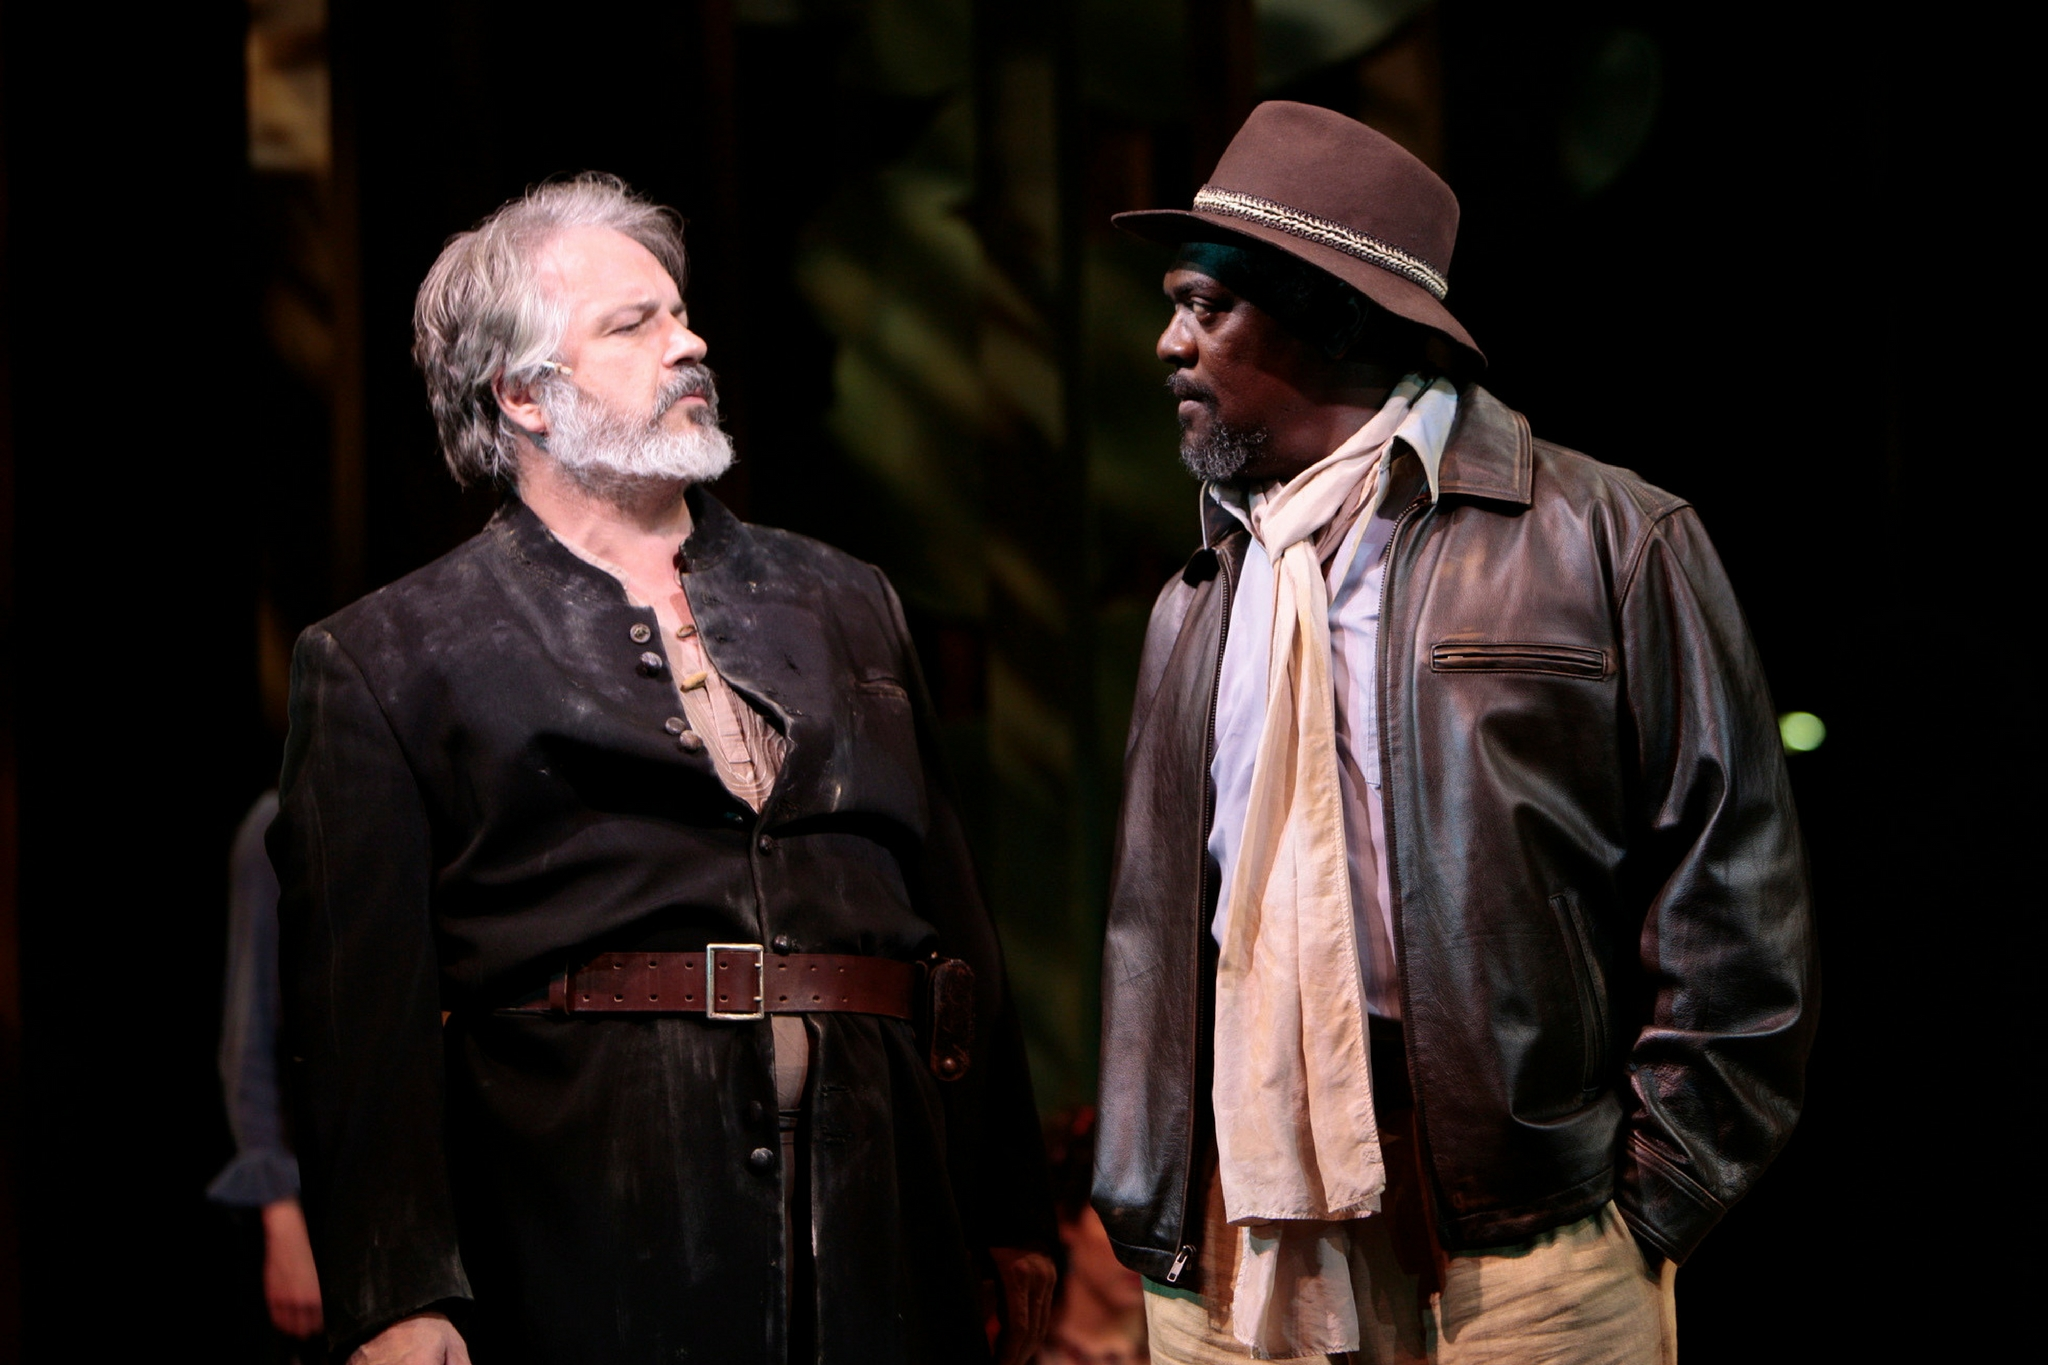 Fred Sullivan, Jr. (Jaques) and Johnny Lee Davenport (Duke Senior) in As You Like It, Shakespeare on the Common 2008-Photo by T. Charles Erickson